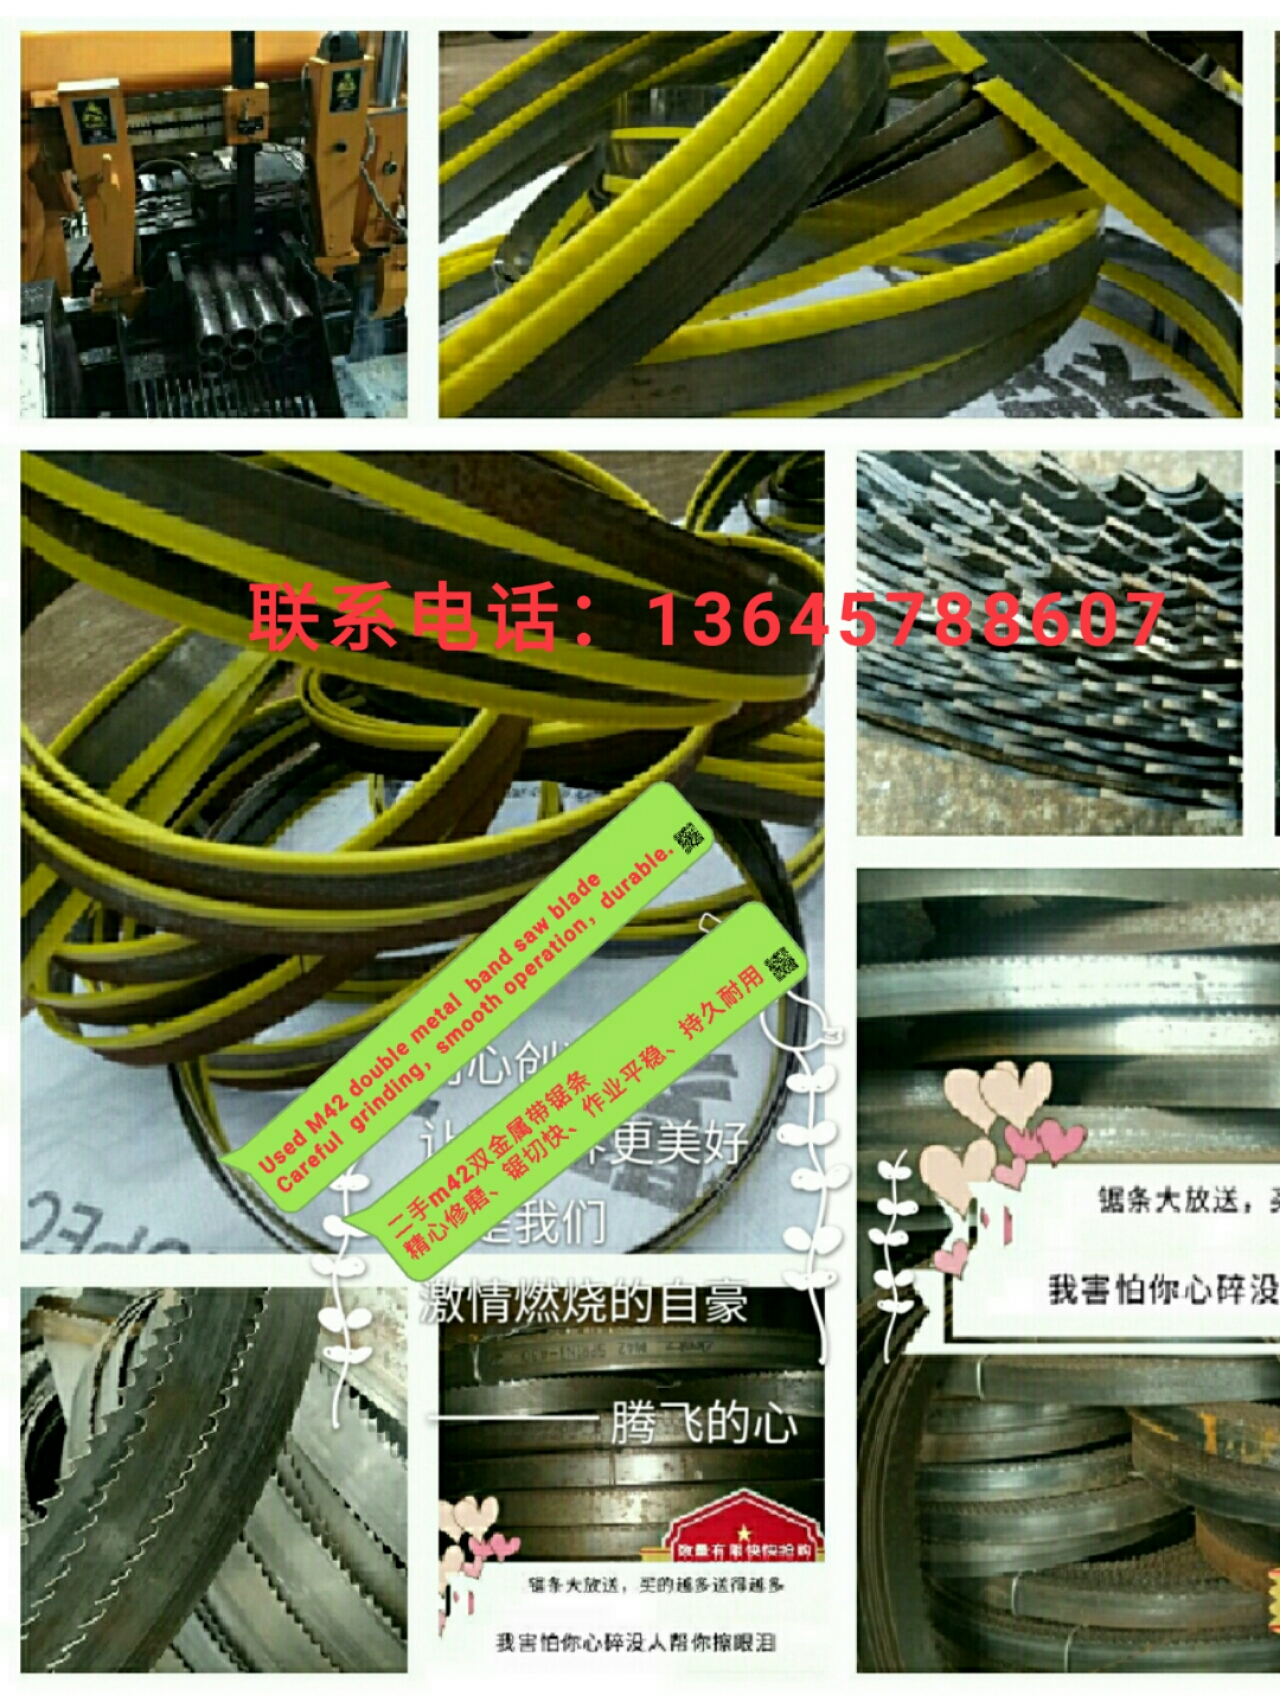 27 width 0.9 thickness 3/4 tensile toothed band sawing machine, belt saw blade finishing, repair, sales